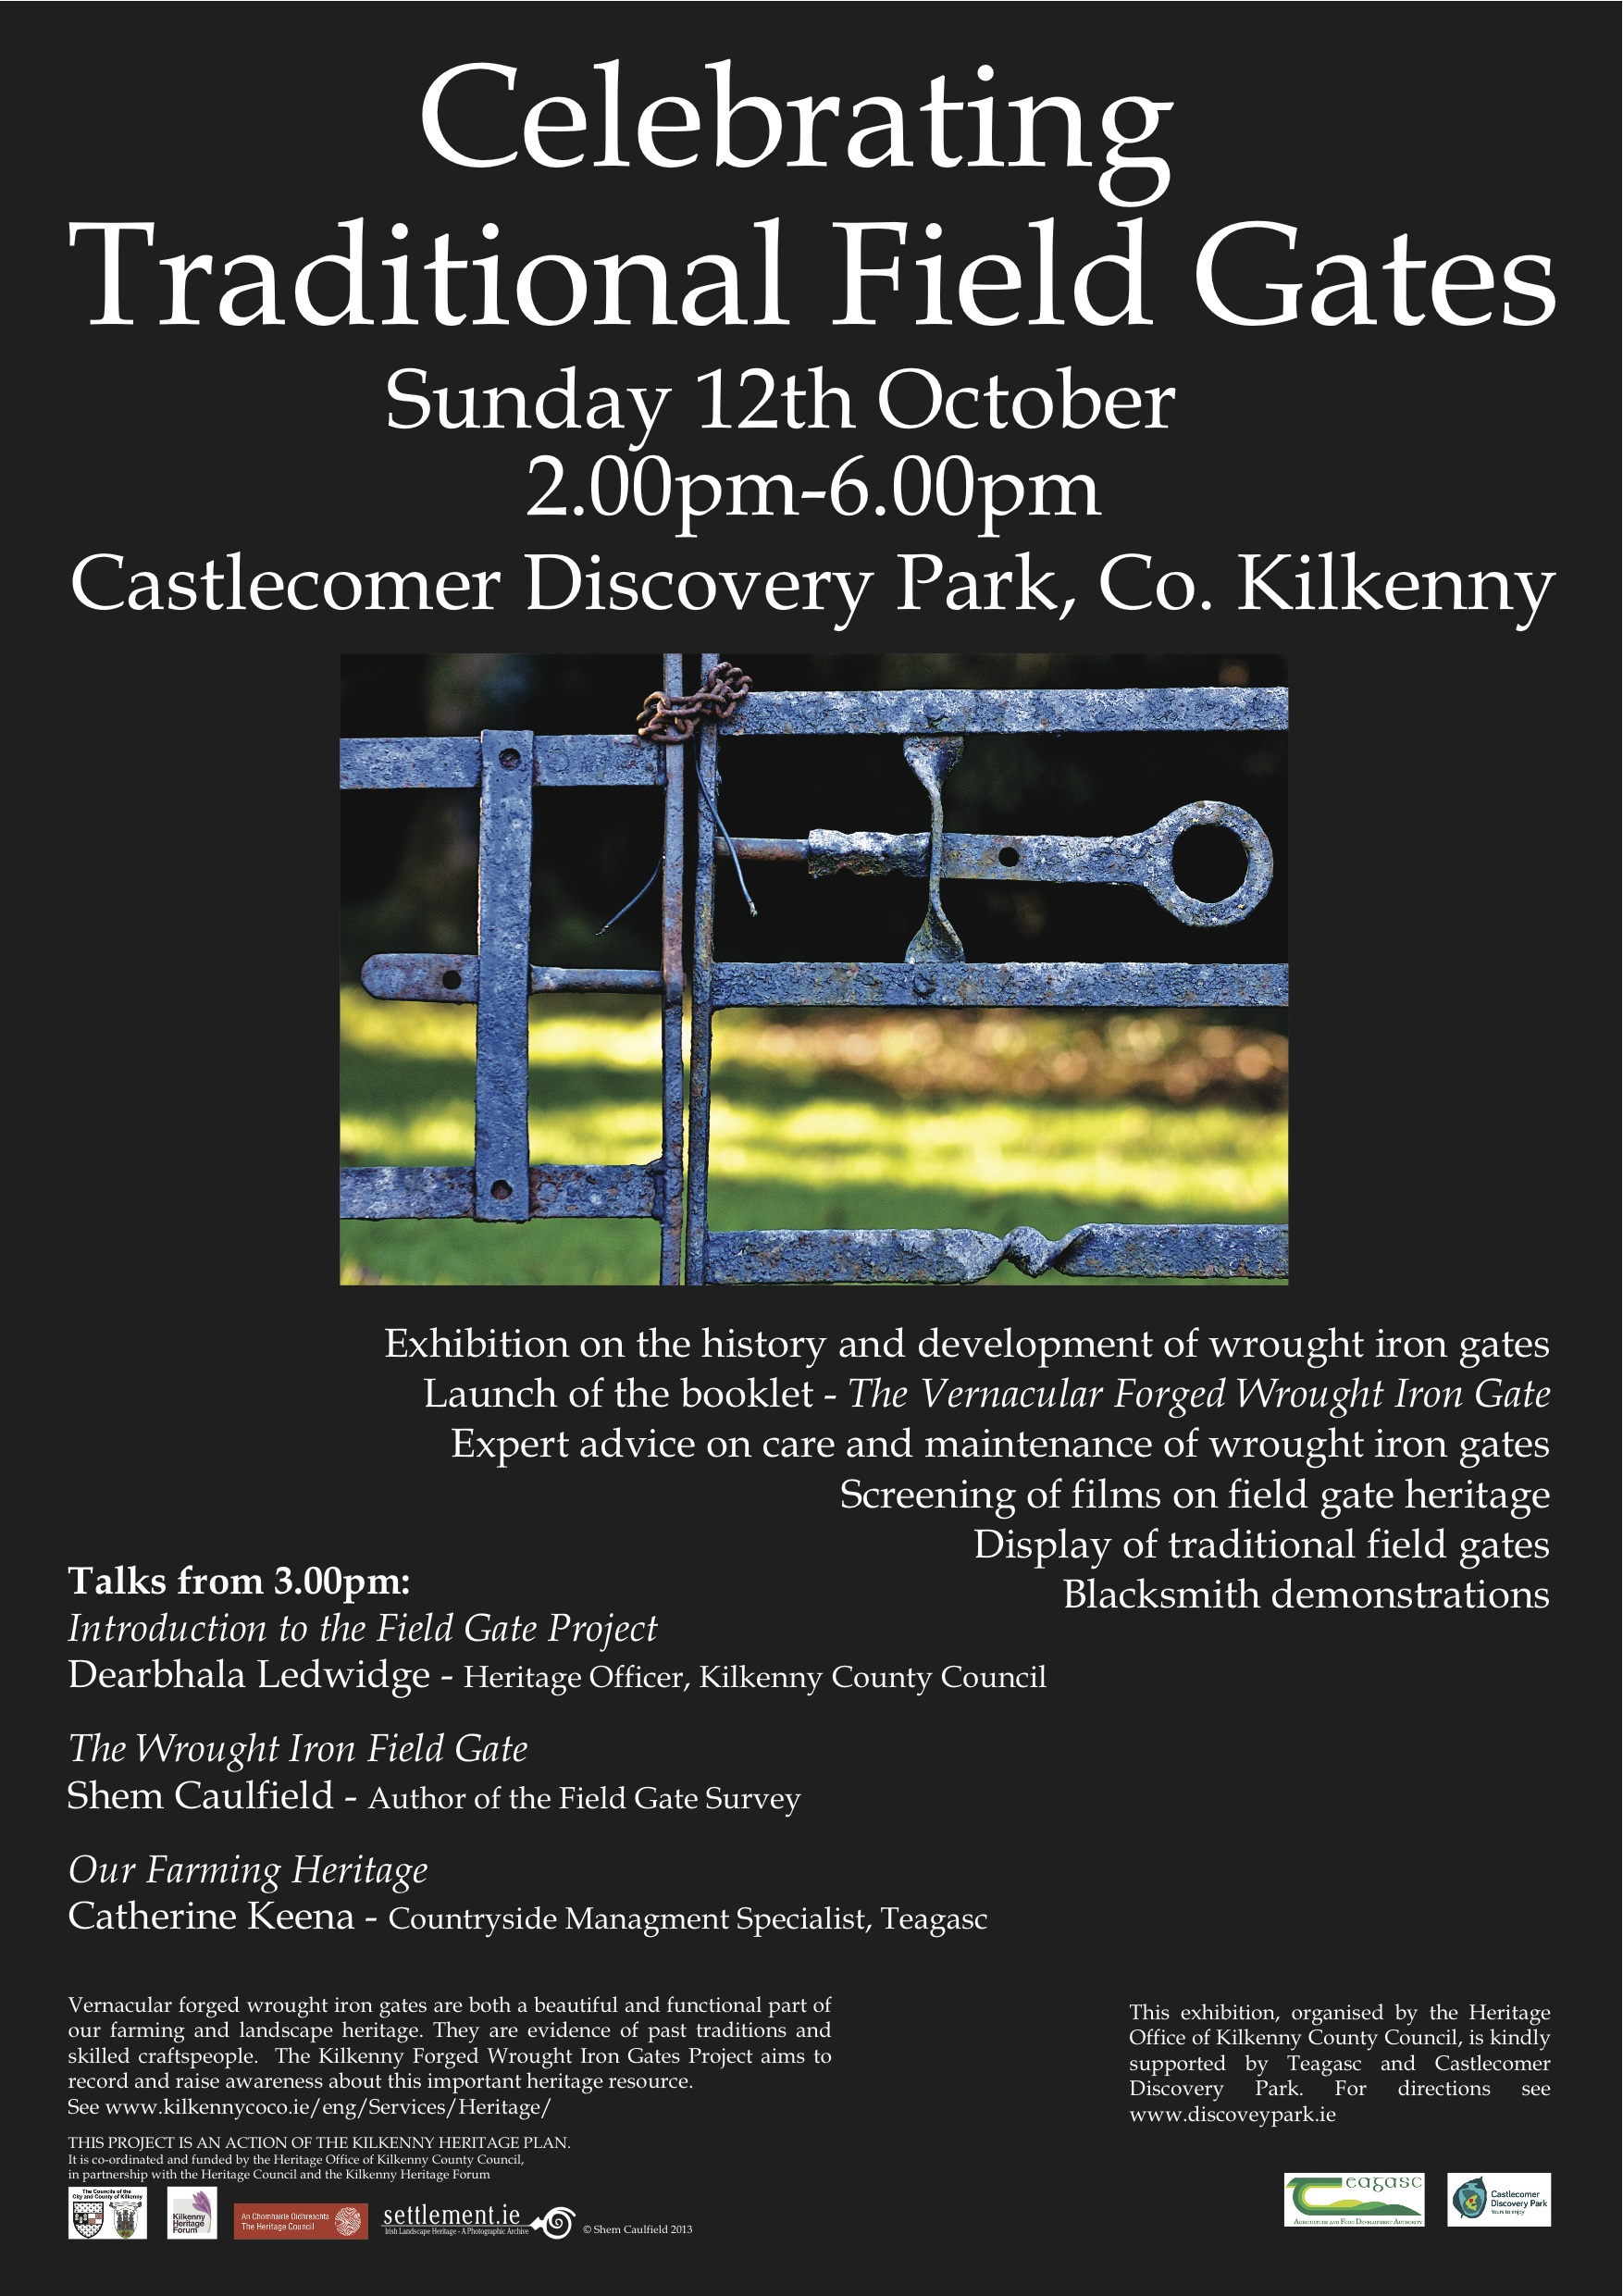 Farm Gates Exhibition 12th October, 2014